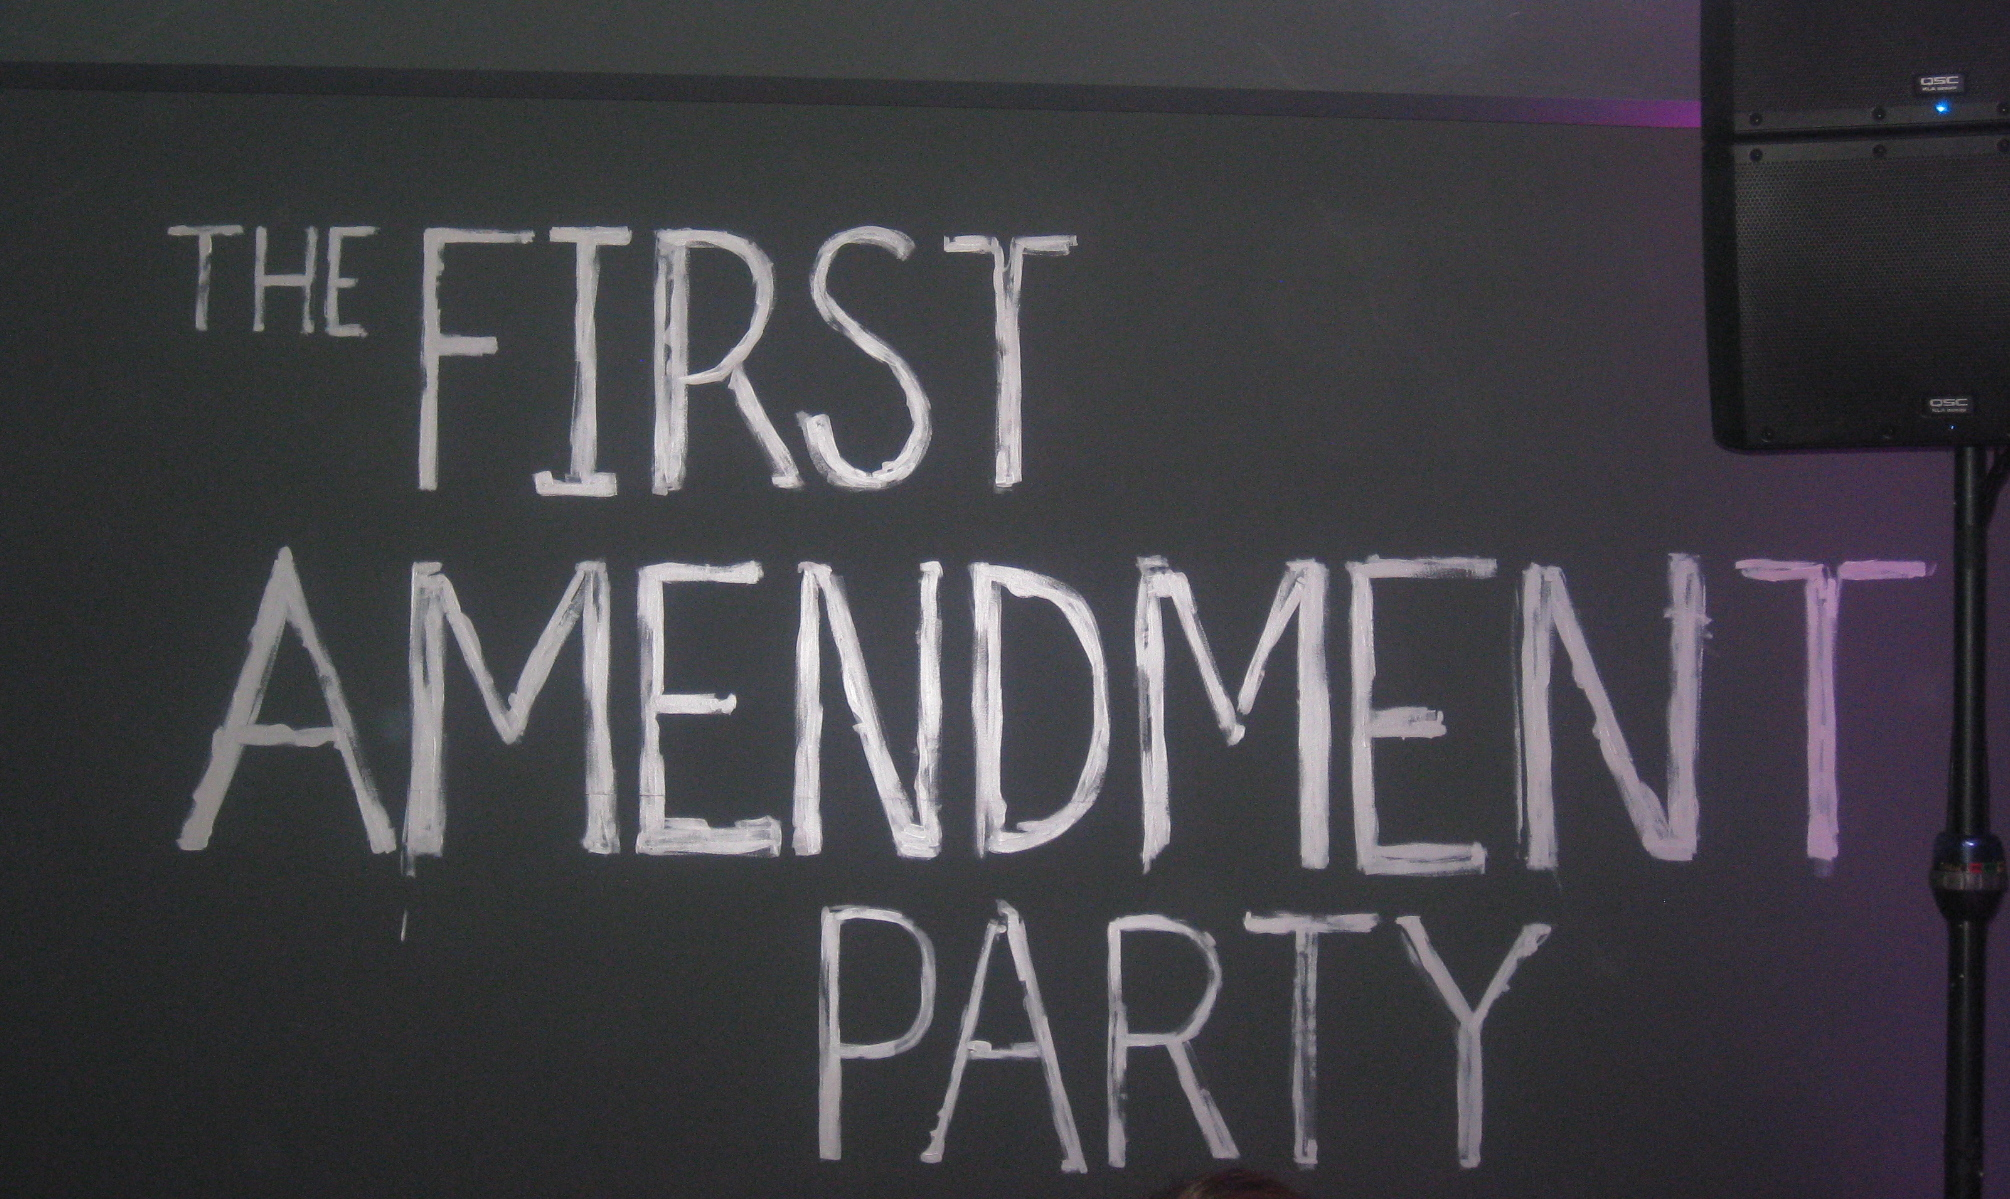 the first amendment Noun 1 first amendment - an amendment to the constitution of the united states guaranteeing the right of free expression includes freedom of assembly and freedom of the press and freedom of religion and freedom of speech bill of rights - a statement of fundamental rights and privileges (especially .